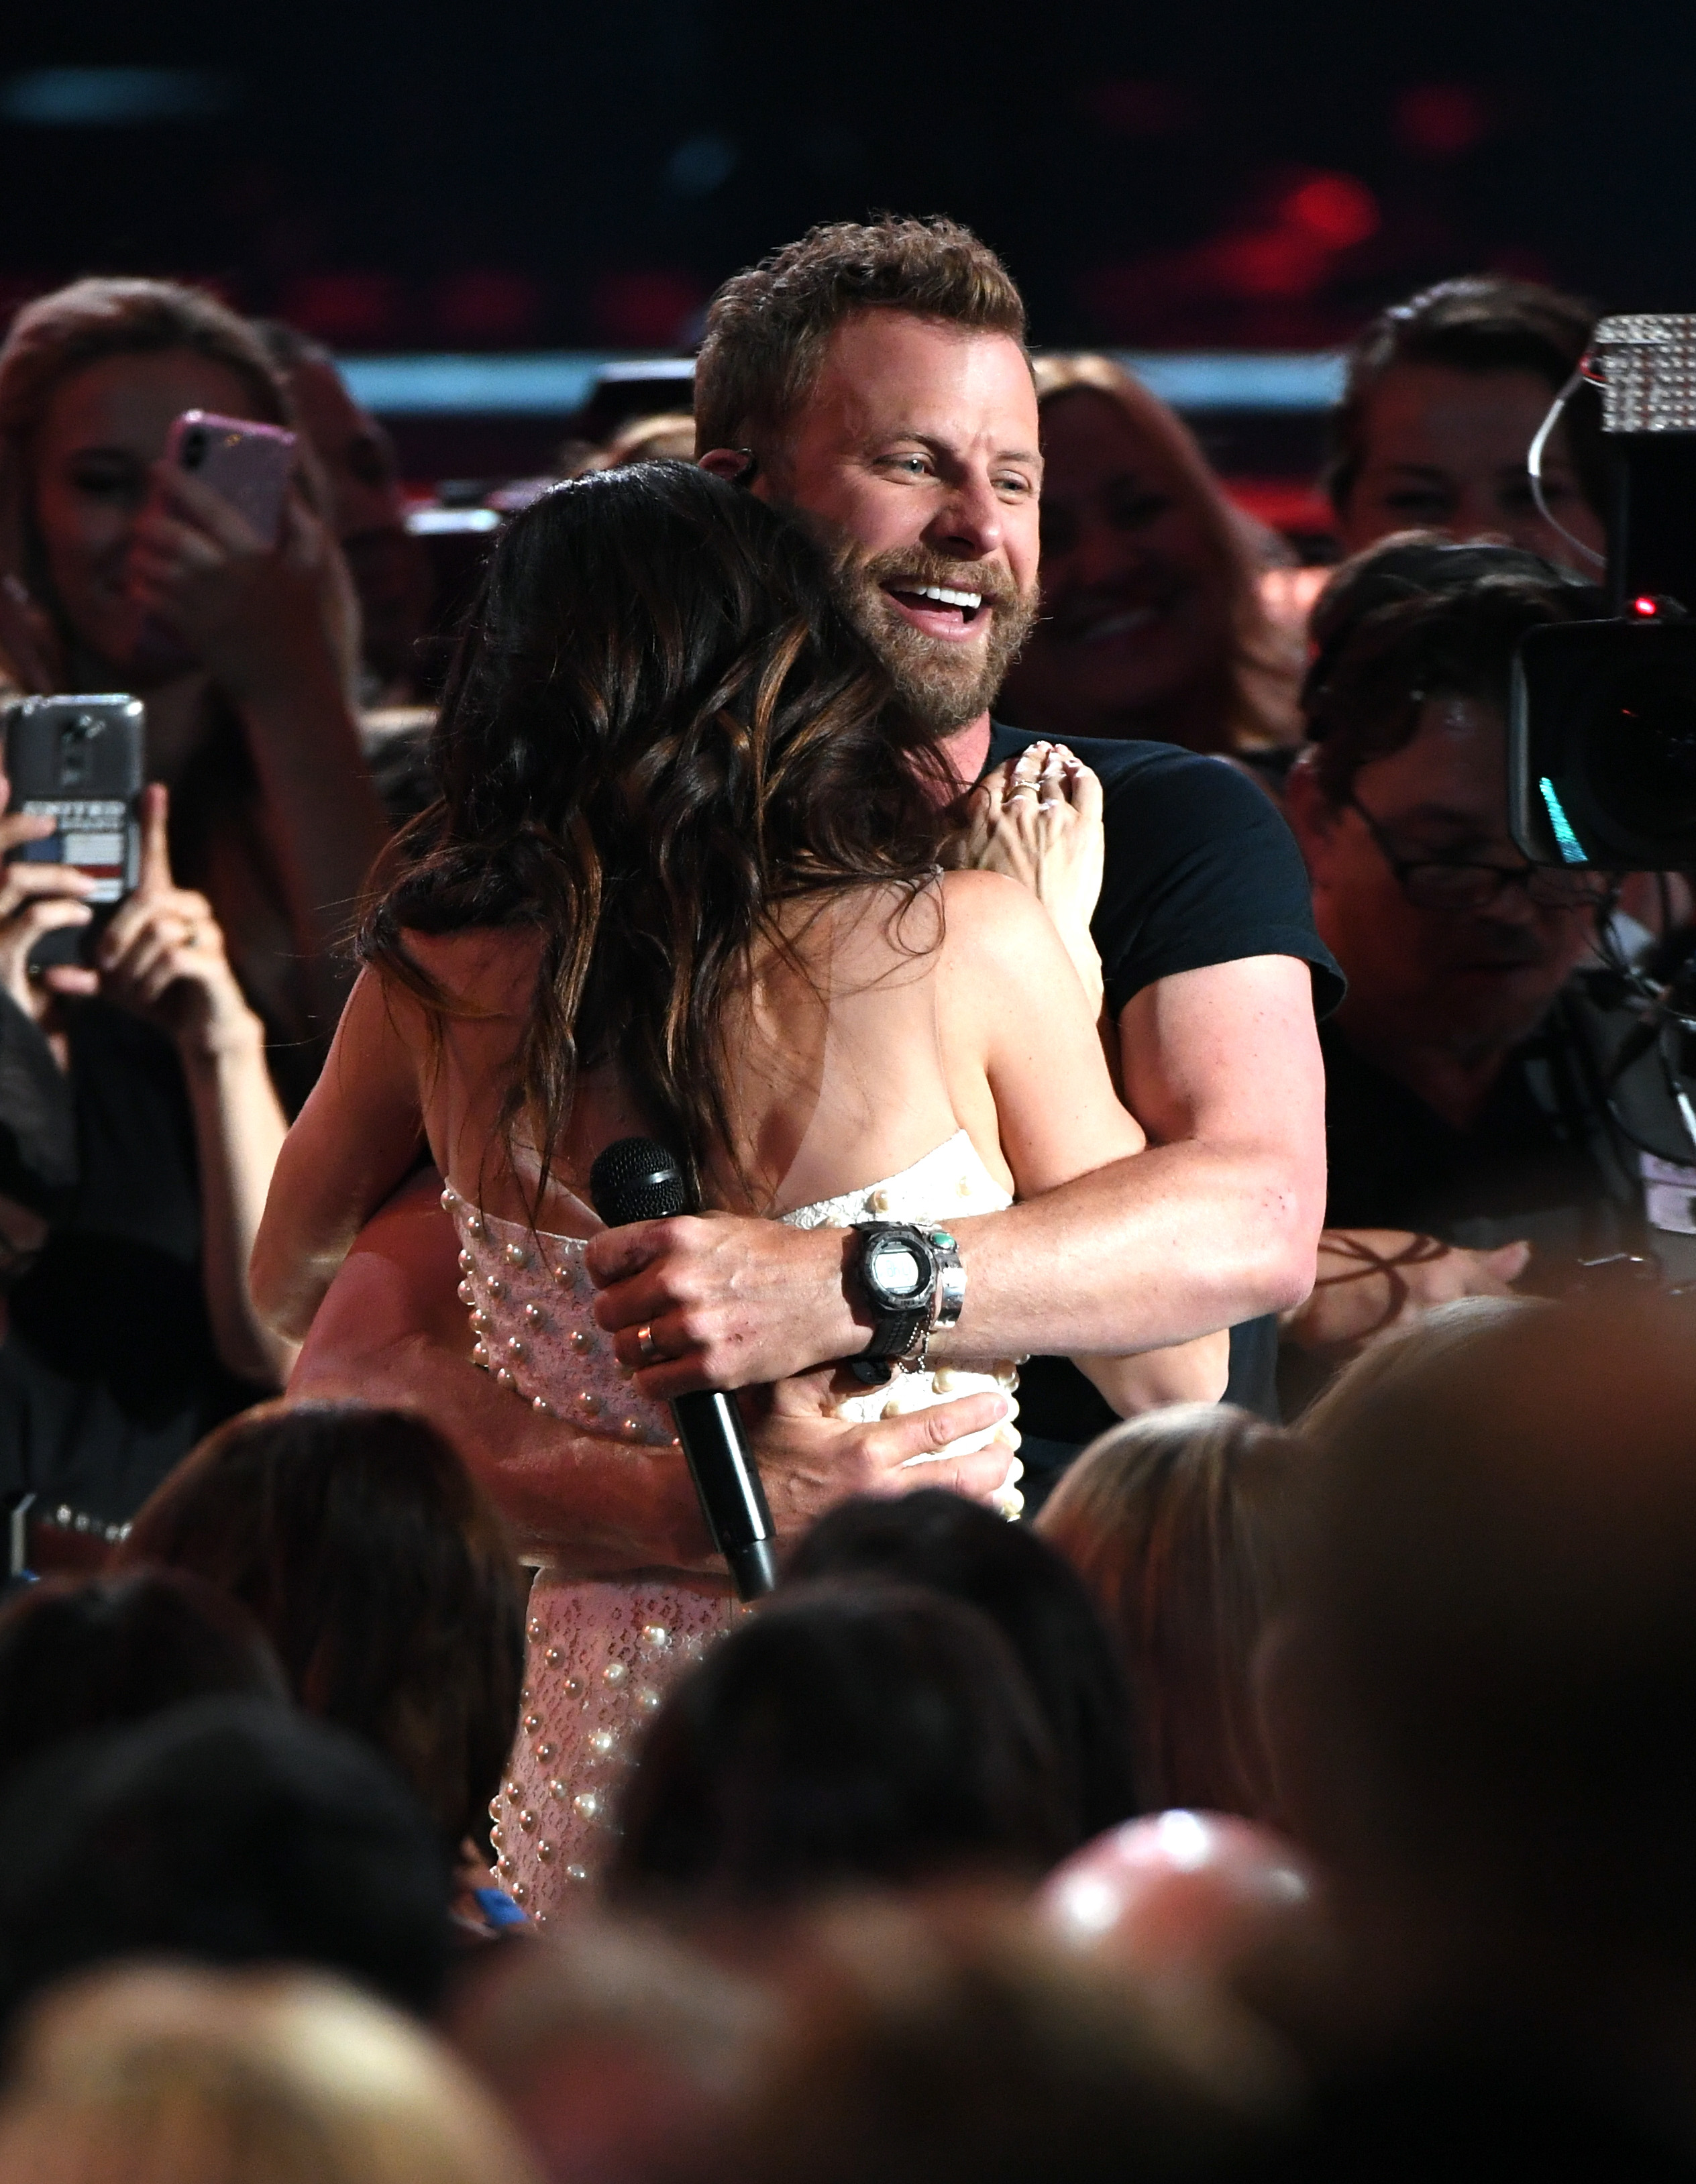 Dierks Bentley embraces his wife Cassidy Black following his performance at the 2018 ACM Awards. (Credit: Getty Images)